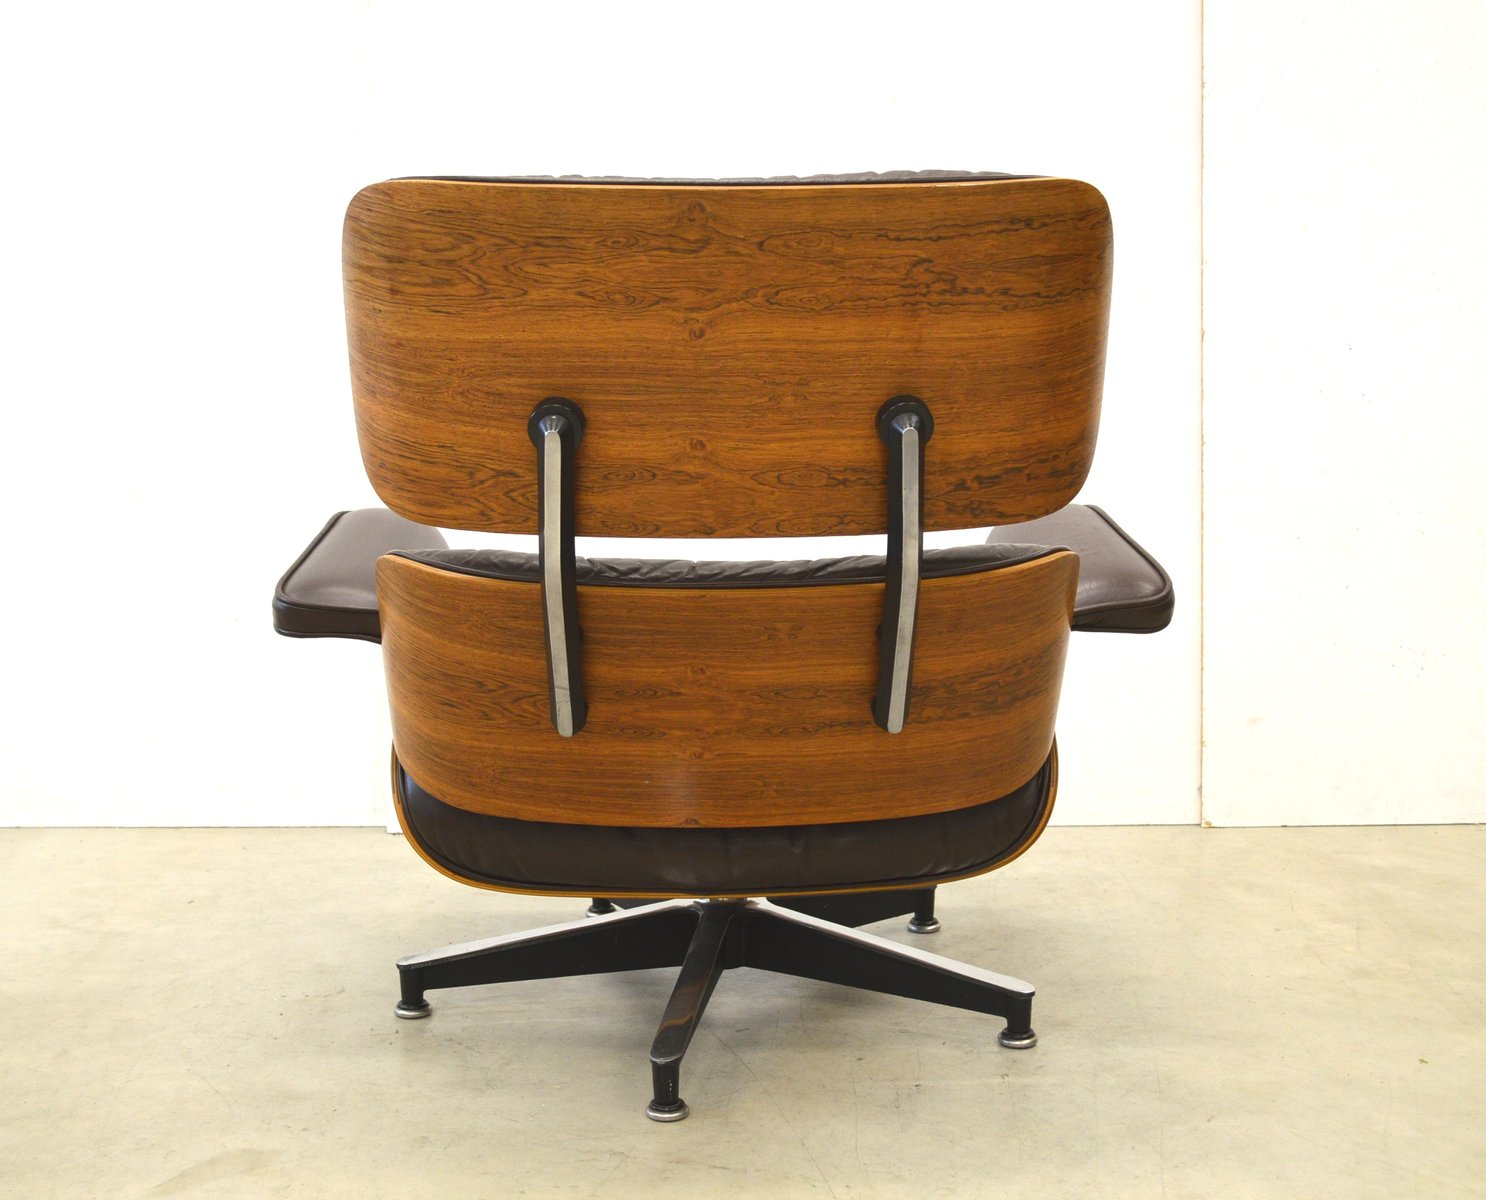 Vintage rosewood lounge chair by charles ray eames for herman miller 1 - Vintage herman miller ...